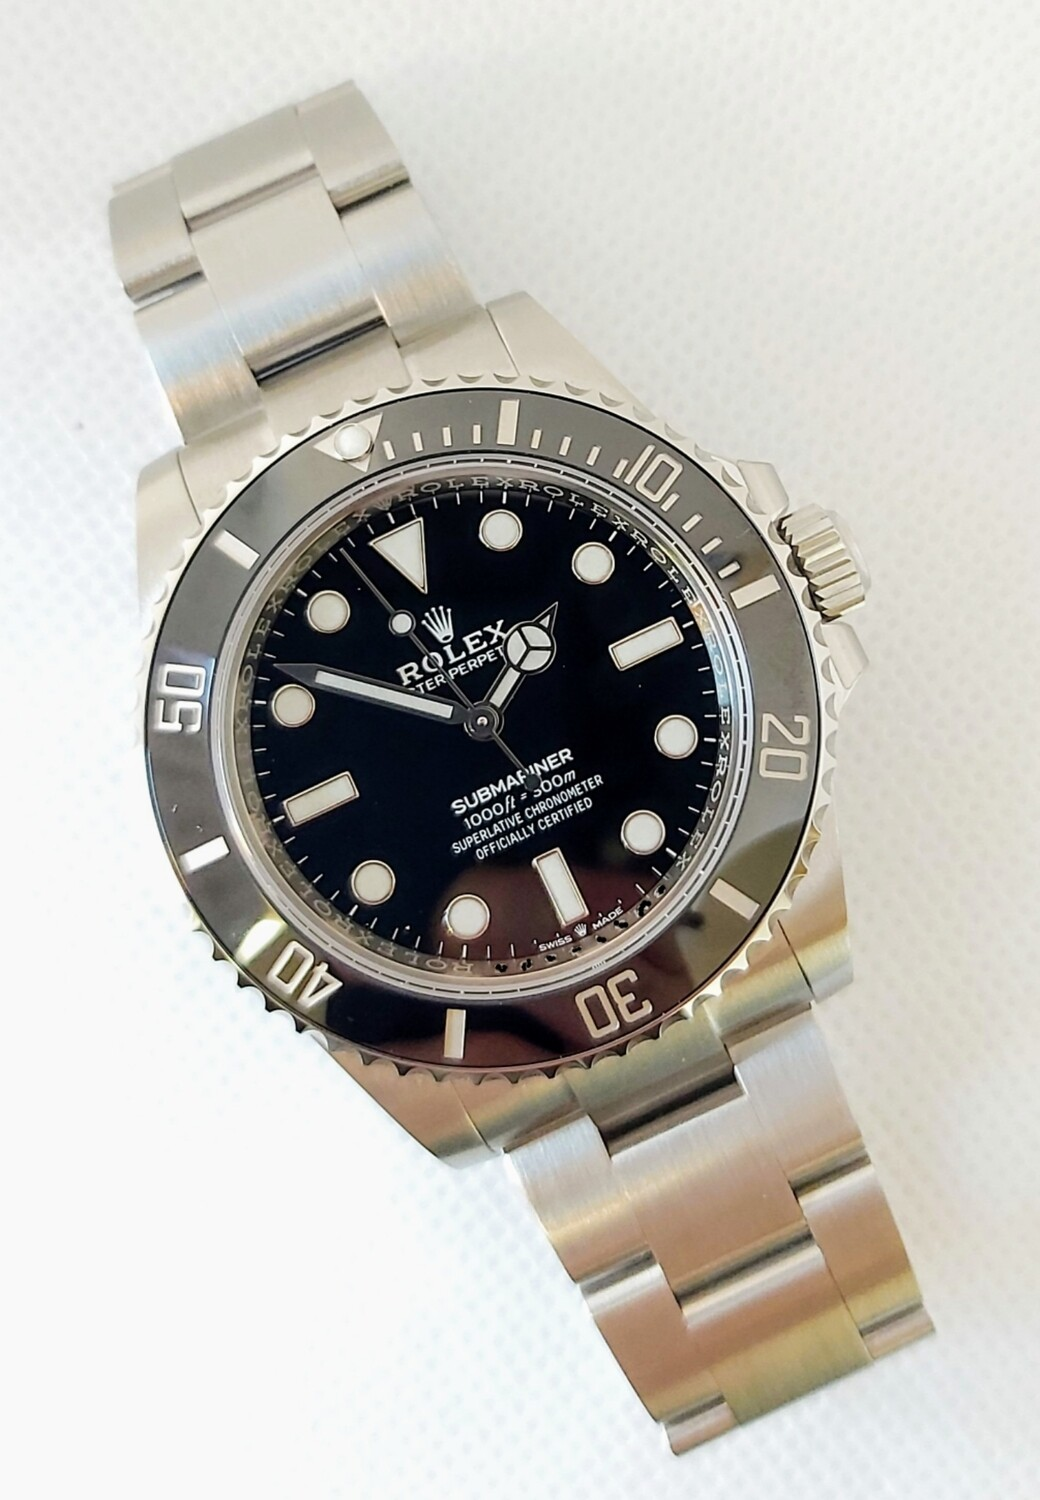 Rolex Submariner 124060 - Unworn 2020 Full Set